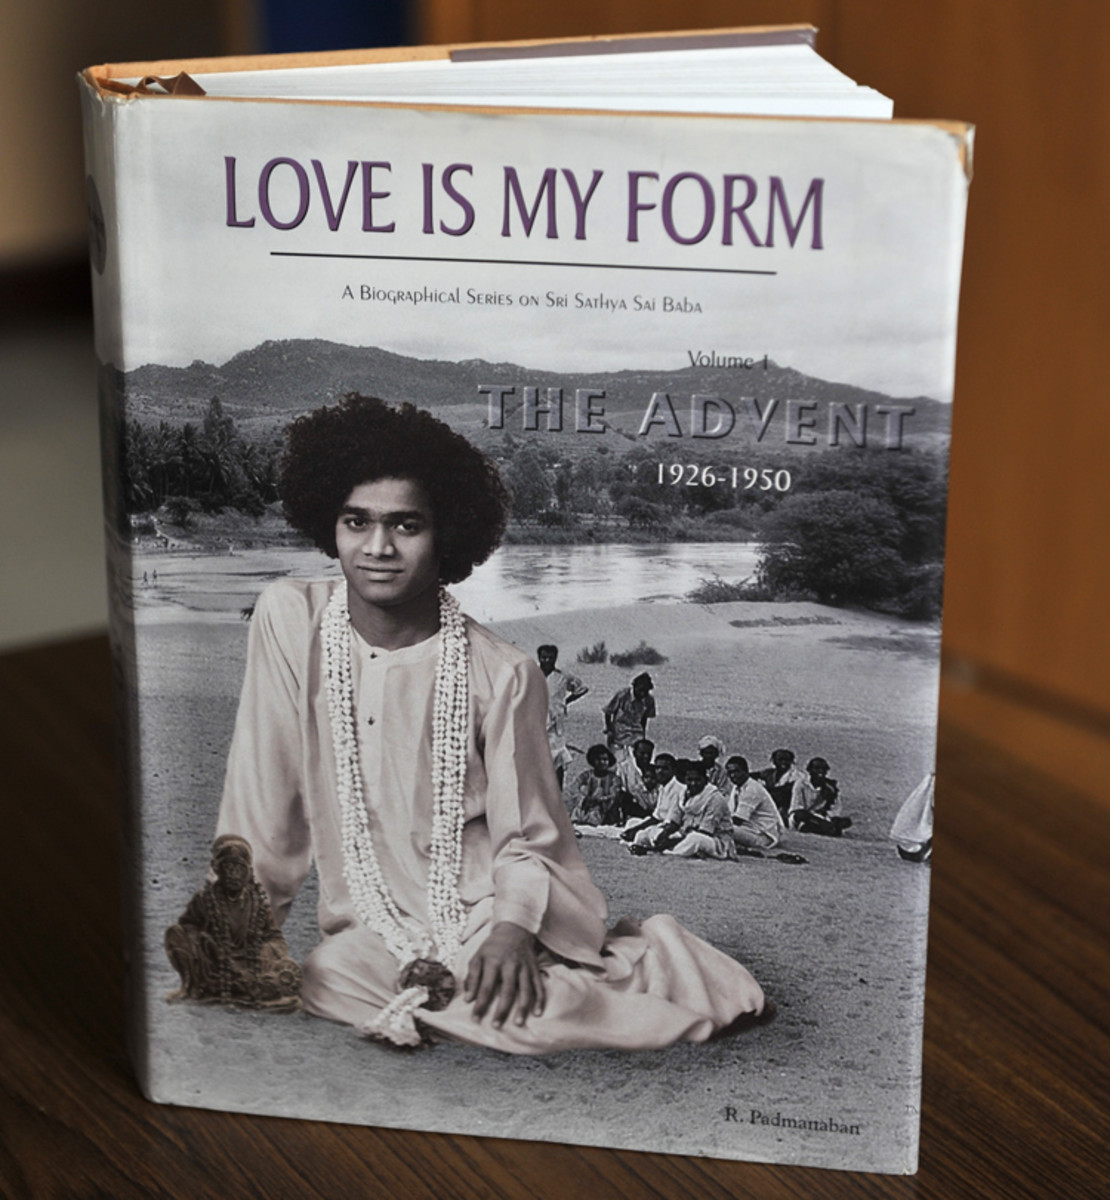 Love is My Form: Most comprehensive biography of the early years of Sri Sathya Sai